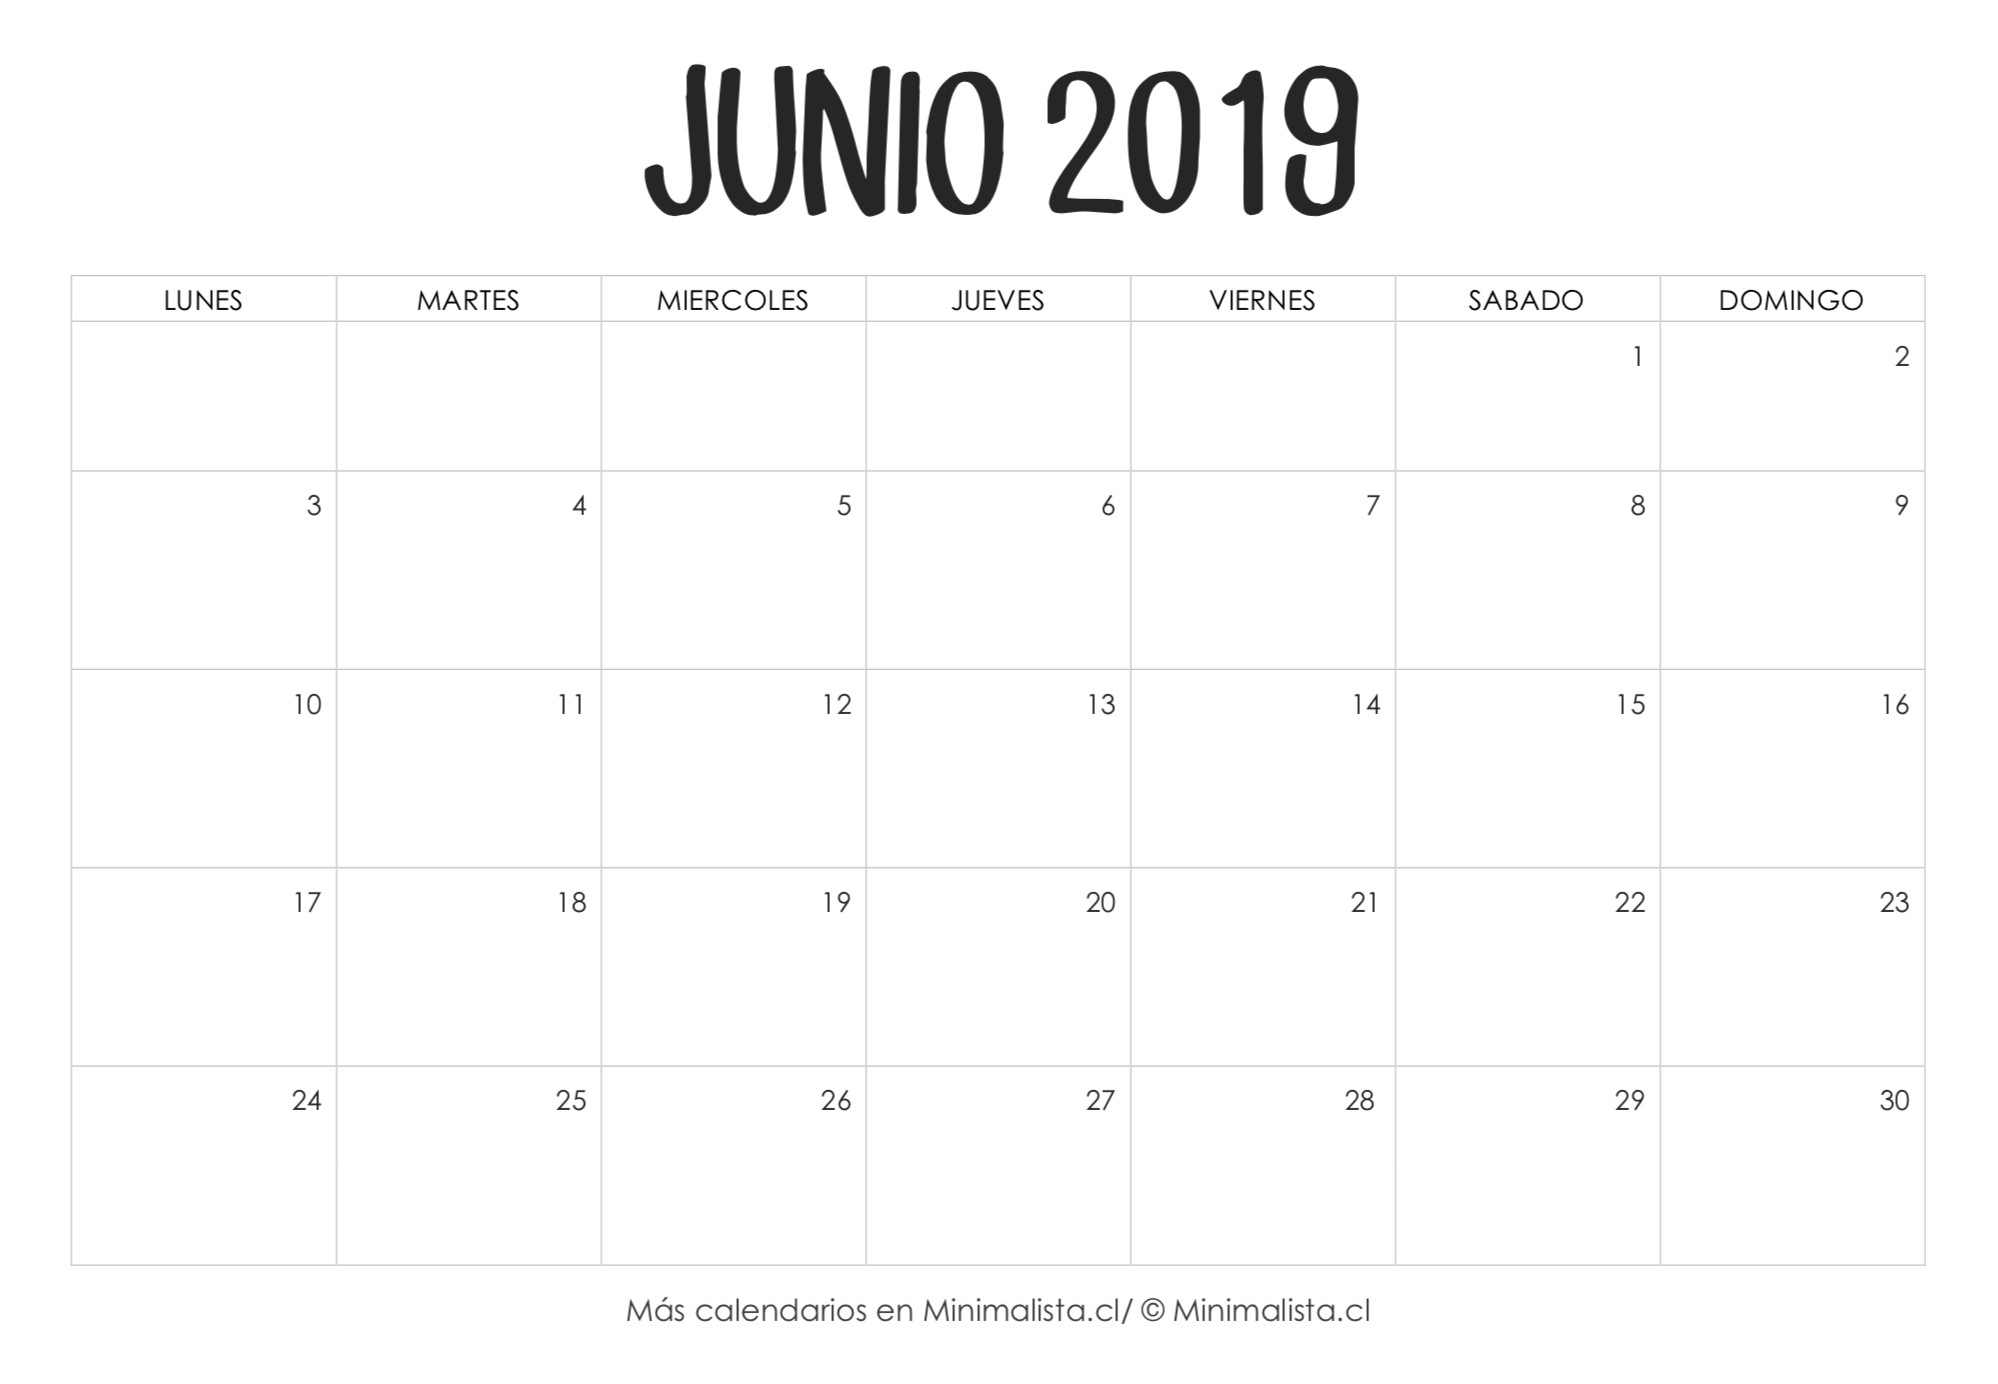 Calendario 2019 Colombia Con Festivos Pdf Más Populares Best Calendario Enero 2017 Para Imprimir Pdf Image Collection Of Calendario 2019 Colombia Con Festivos Pdf Más Arriba-a-fecha El Mundo 0601 [pdf Document]